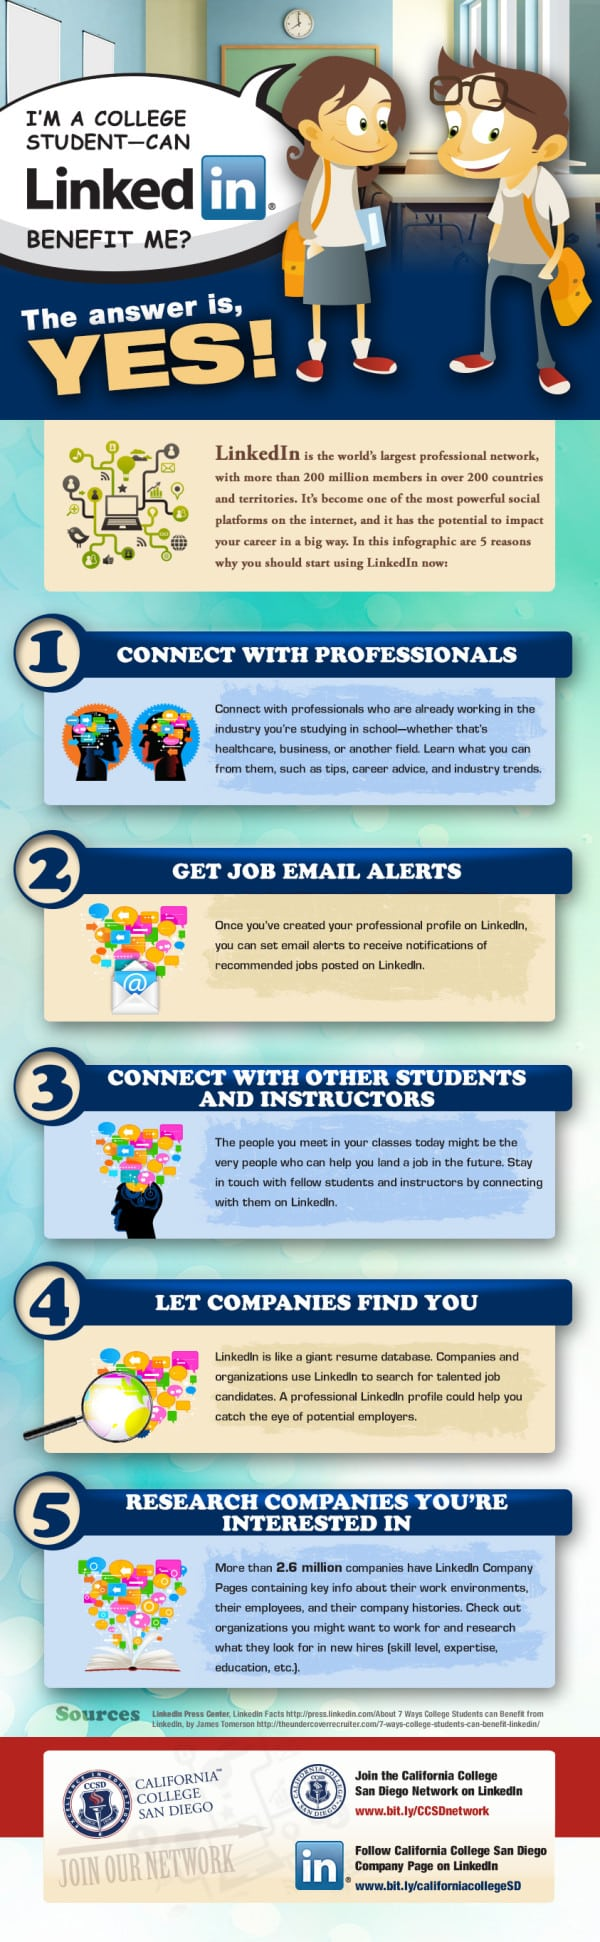 What Do I Put in My LinkedIn Profile if I am a College Student? LinkedIn  infoGrap_currStudents_CCSD4-e1401331251211